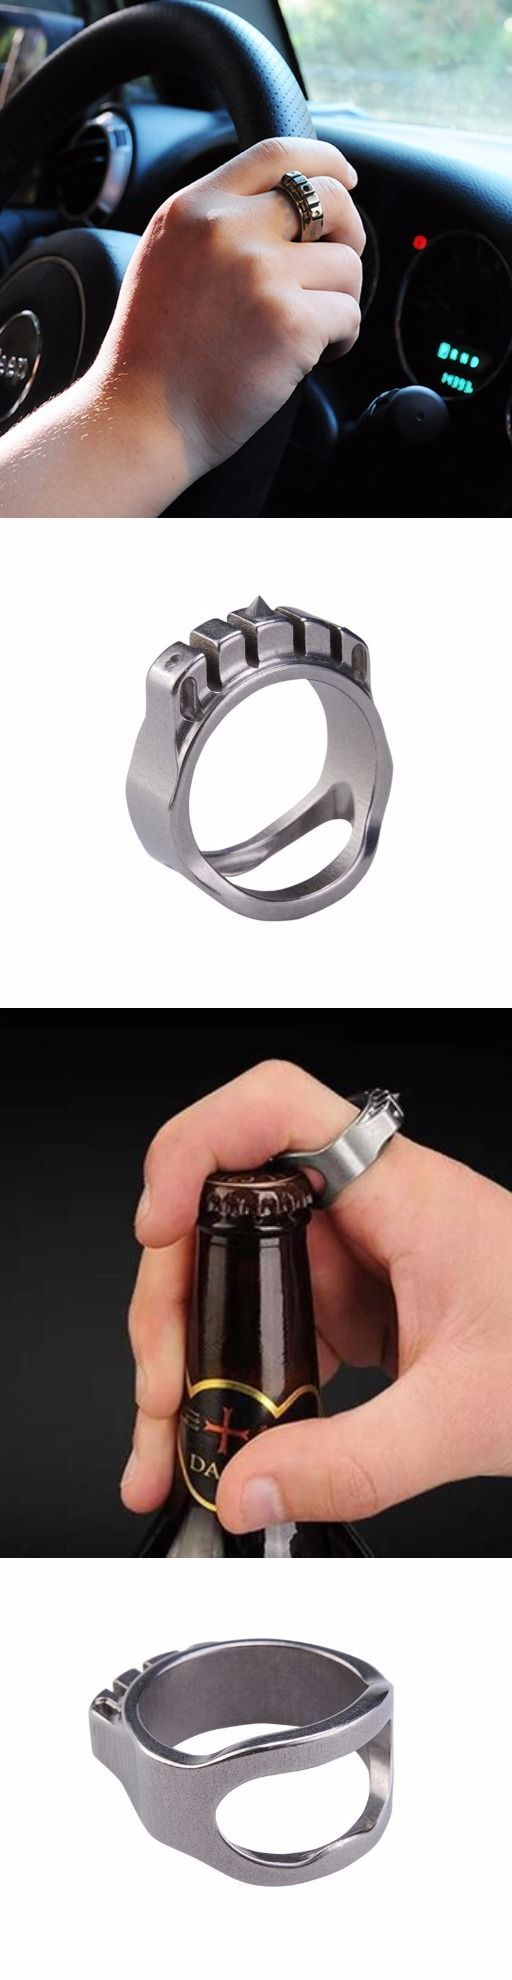 MecArmy Tactical Ring Self Defense Weapon With Hidden Bottle Opener Function: